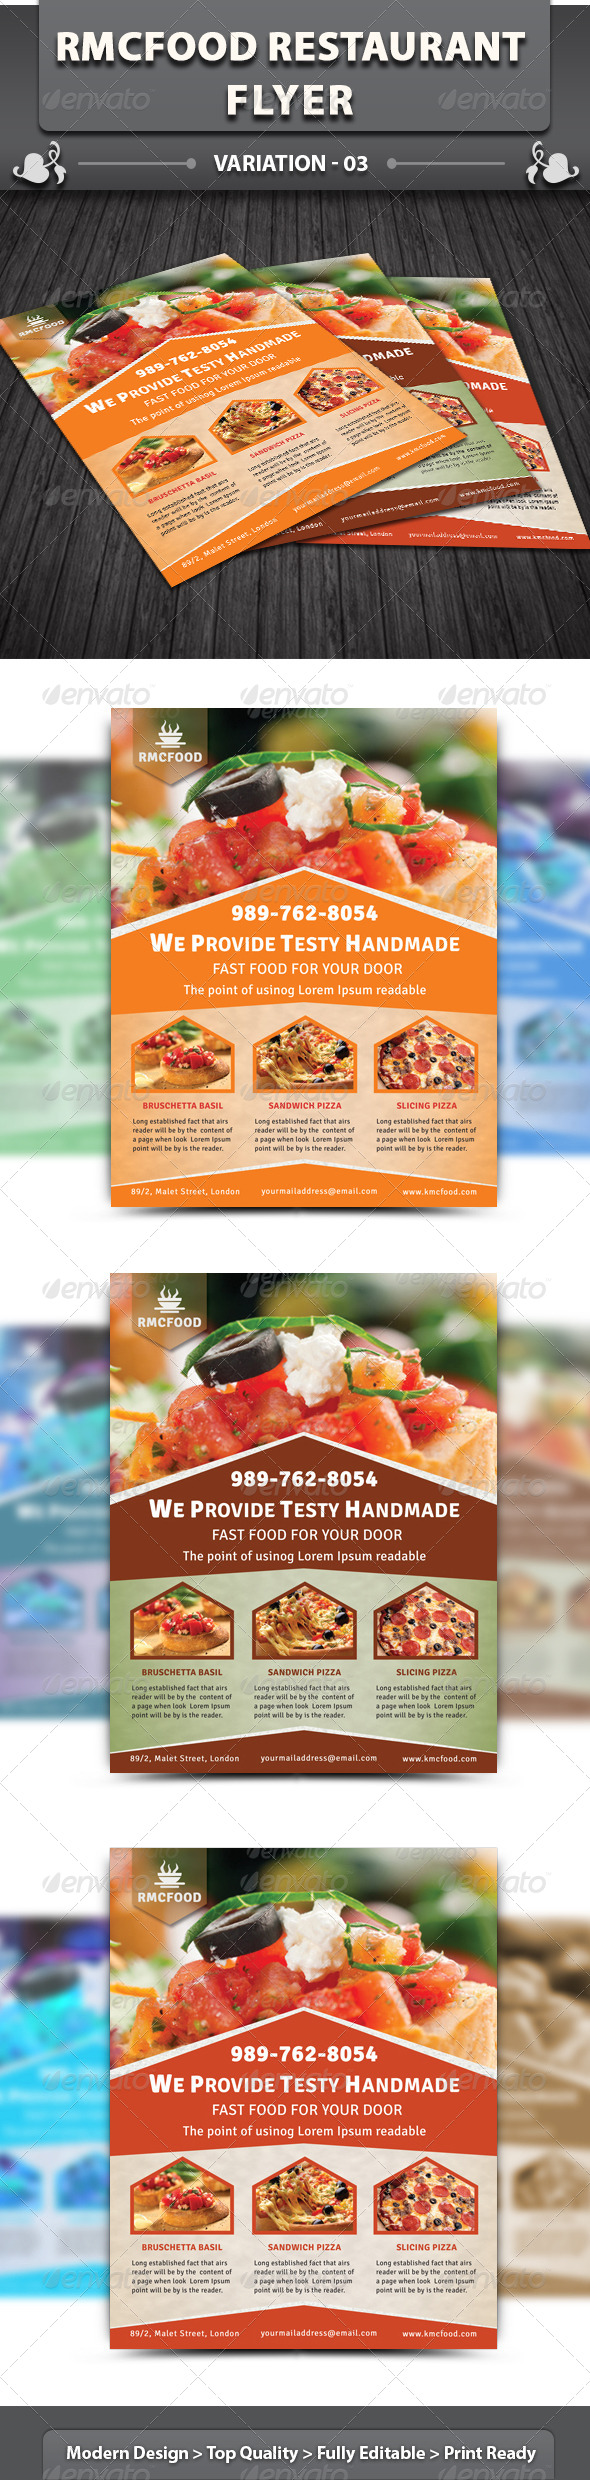 GraphicRiver RMC Food Restaurant Flyer 5541004